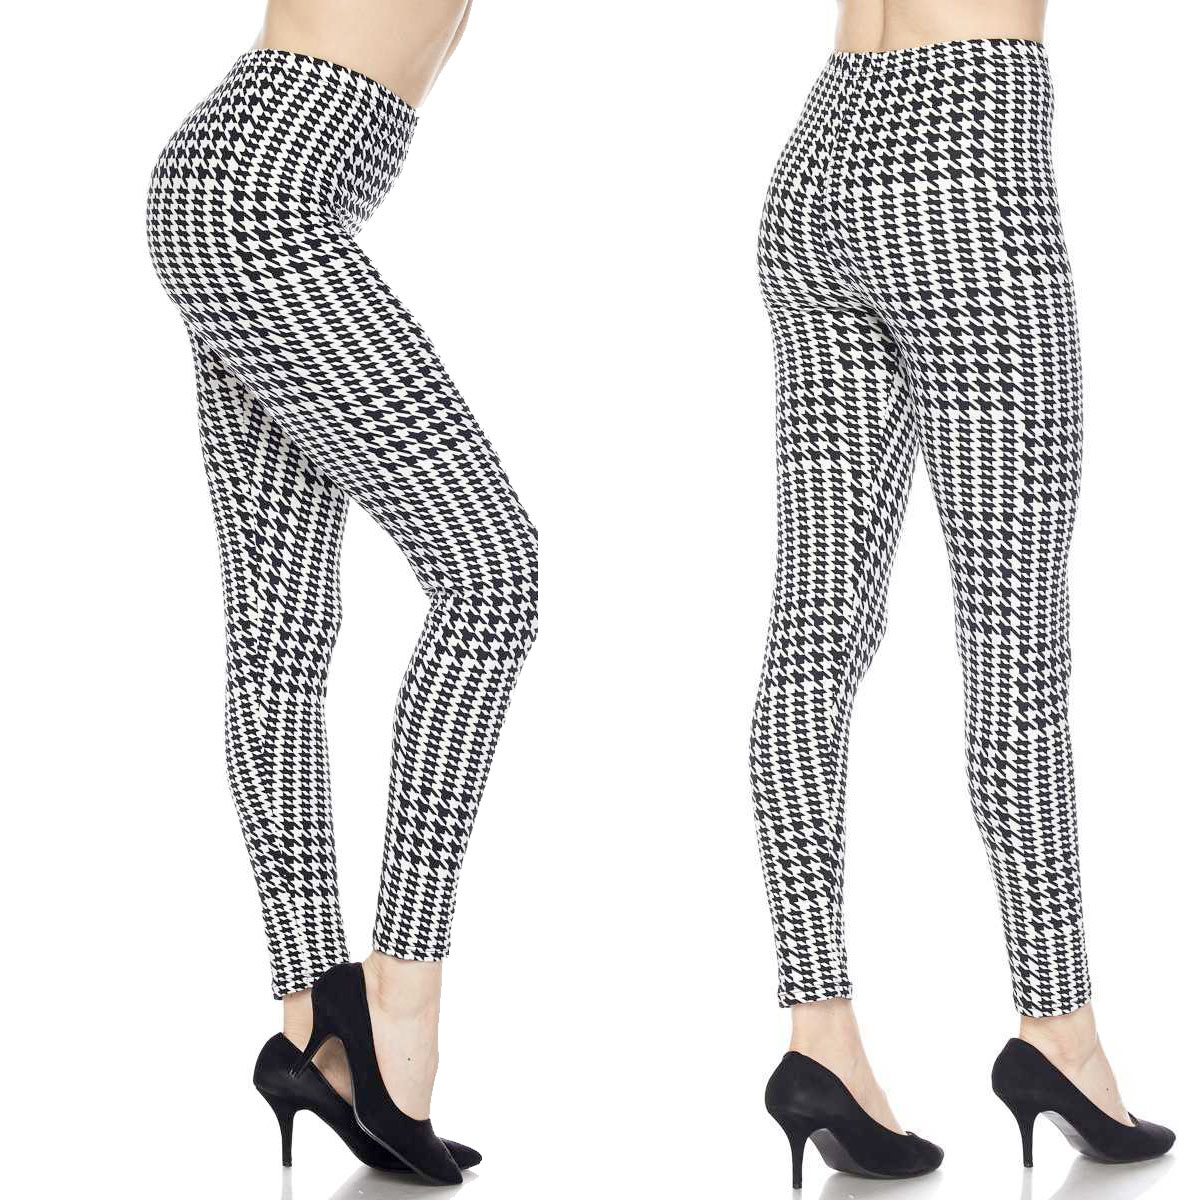 Brushed Fiber Leggings - Ankle Length Prints J084 Houndstooth Brushed Fiber Leggings - Ankle Length  - Plus Size (XL-2X)